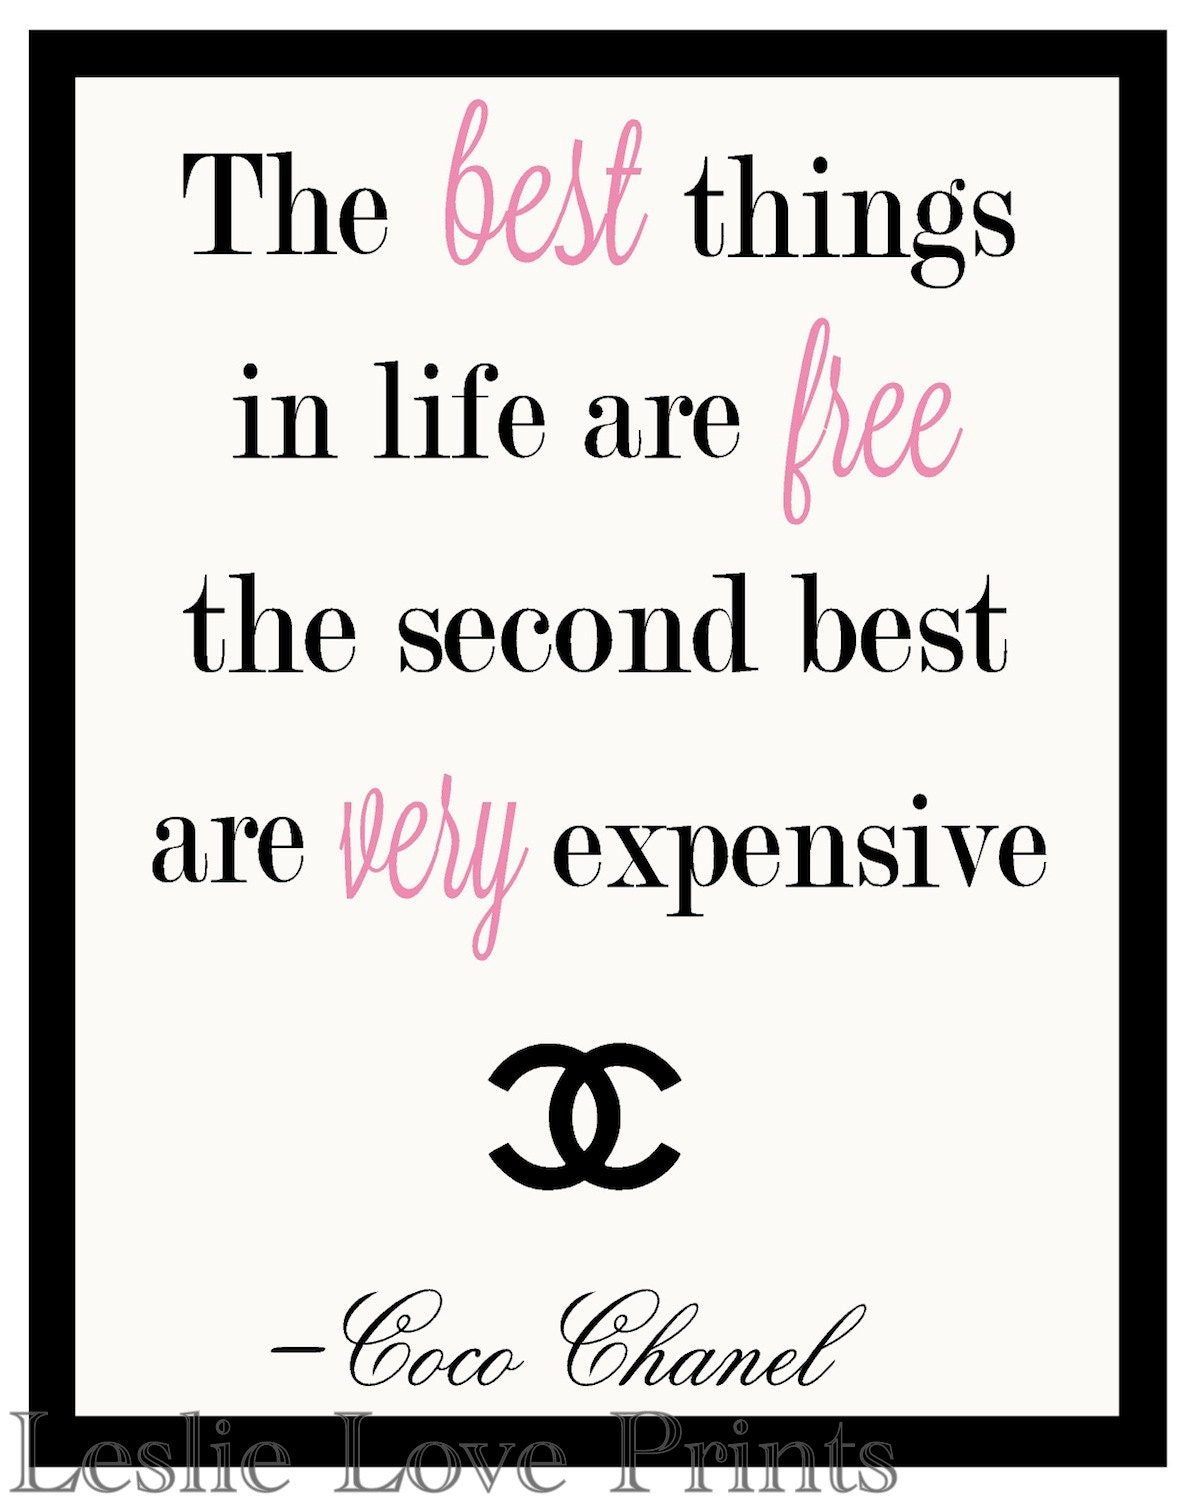 Costco Print Sizes >> Items similar to The best things in life are free. . . Coco Chanel Quote Printable on Etsy